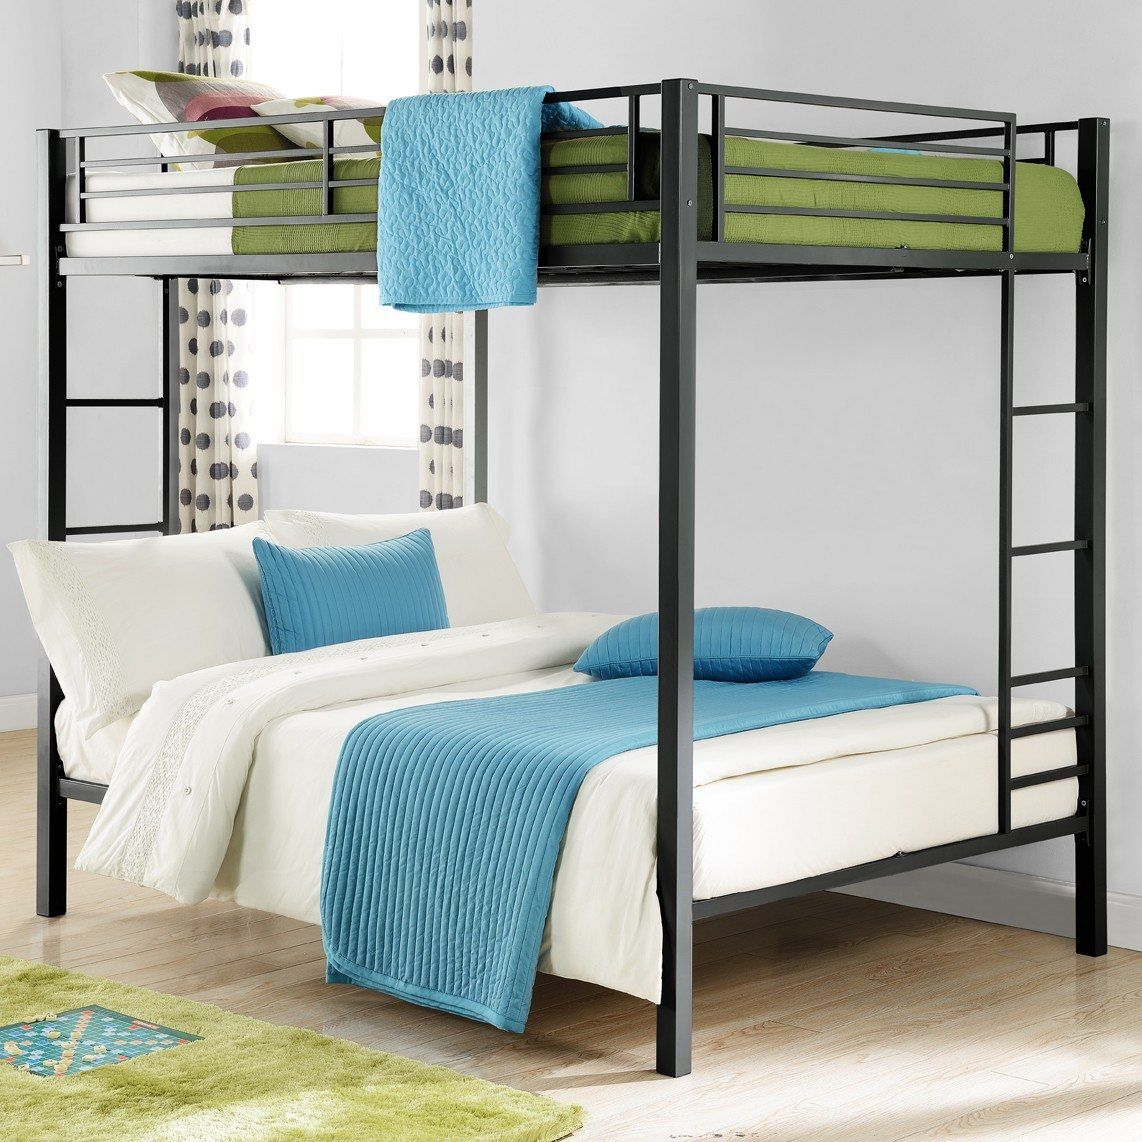 awesome bunk bed additional ideas at with set more check cheap design fancy mattress pin home